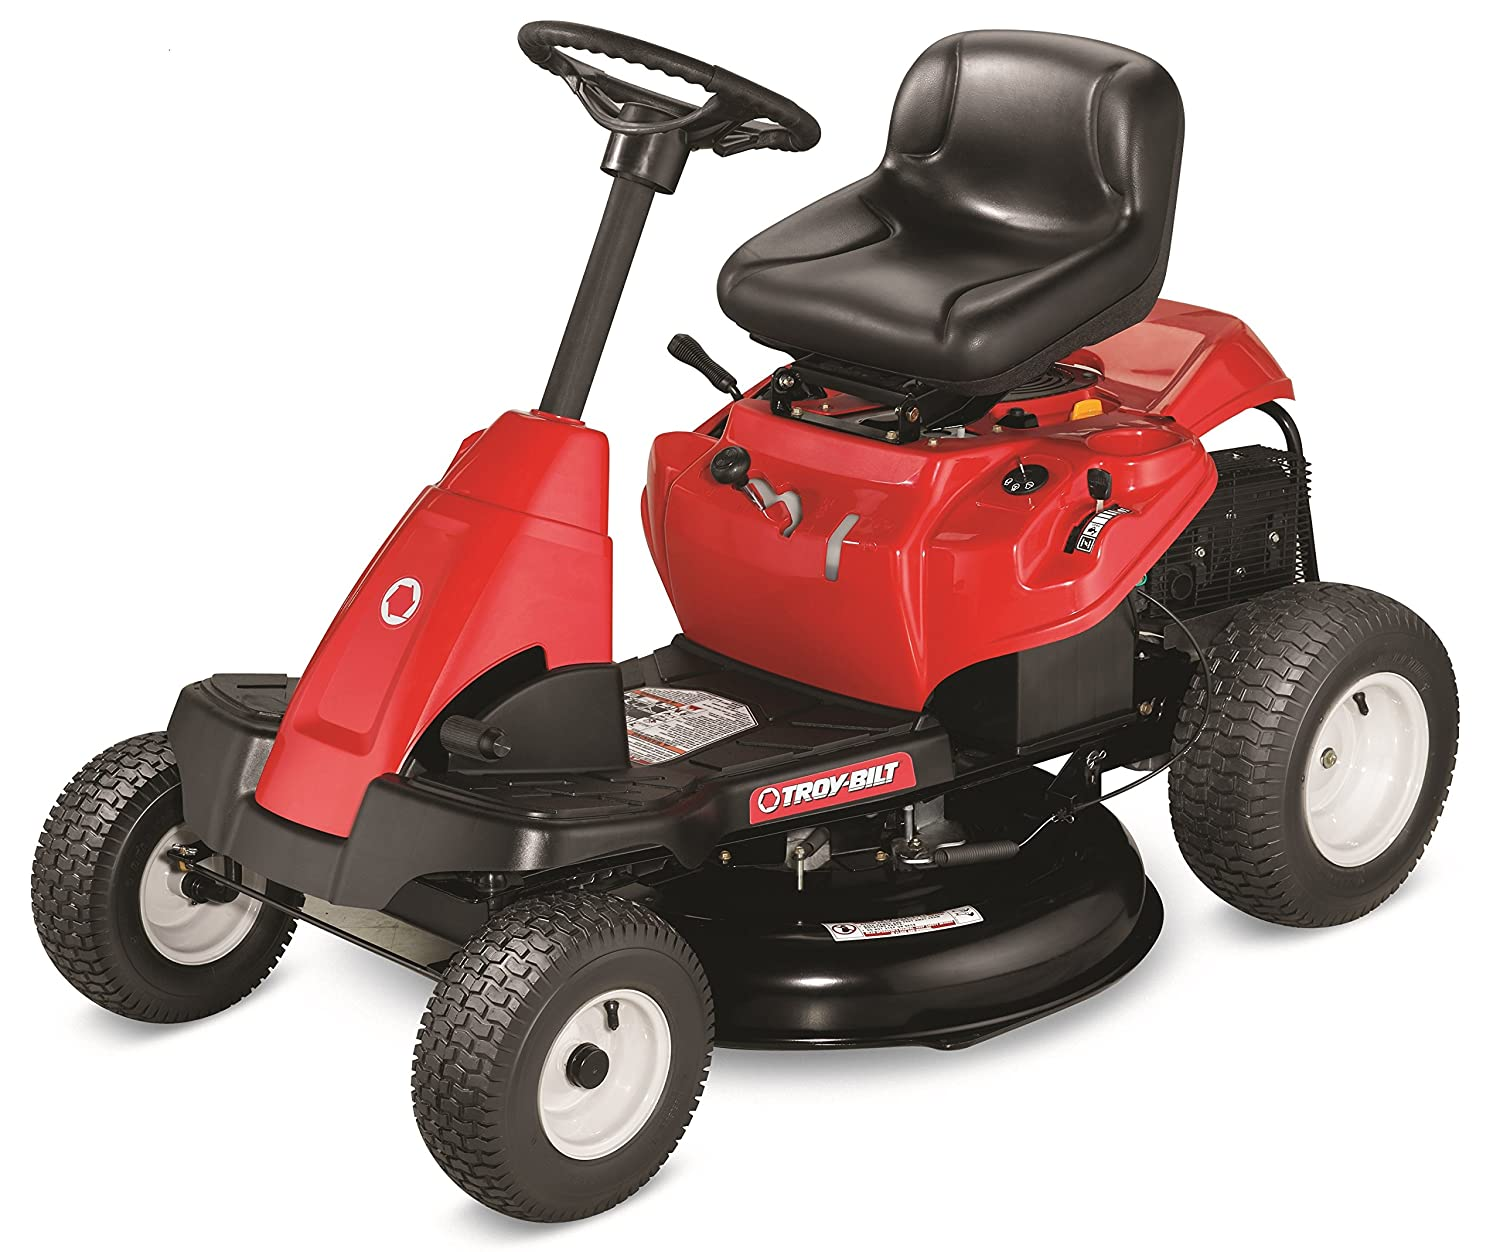 Troy-Bilt 382cc Premium Neighborhood Riding Lawn Mower